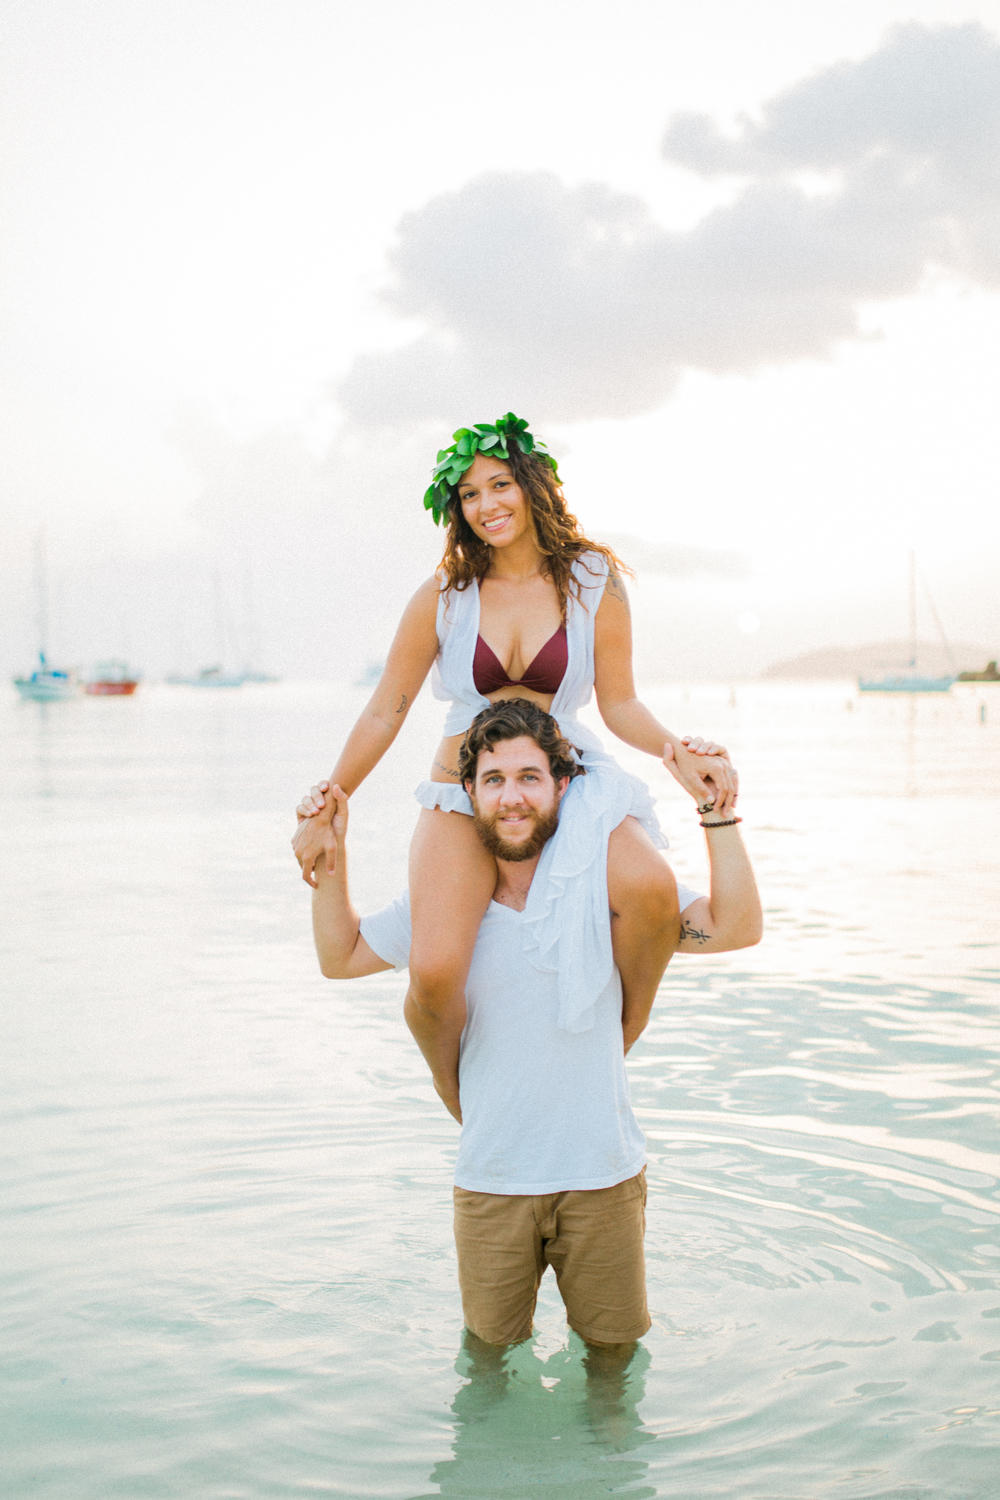 usvi st. thomas, water island honeymoon beach engagement photography at sunset